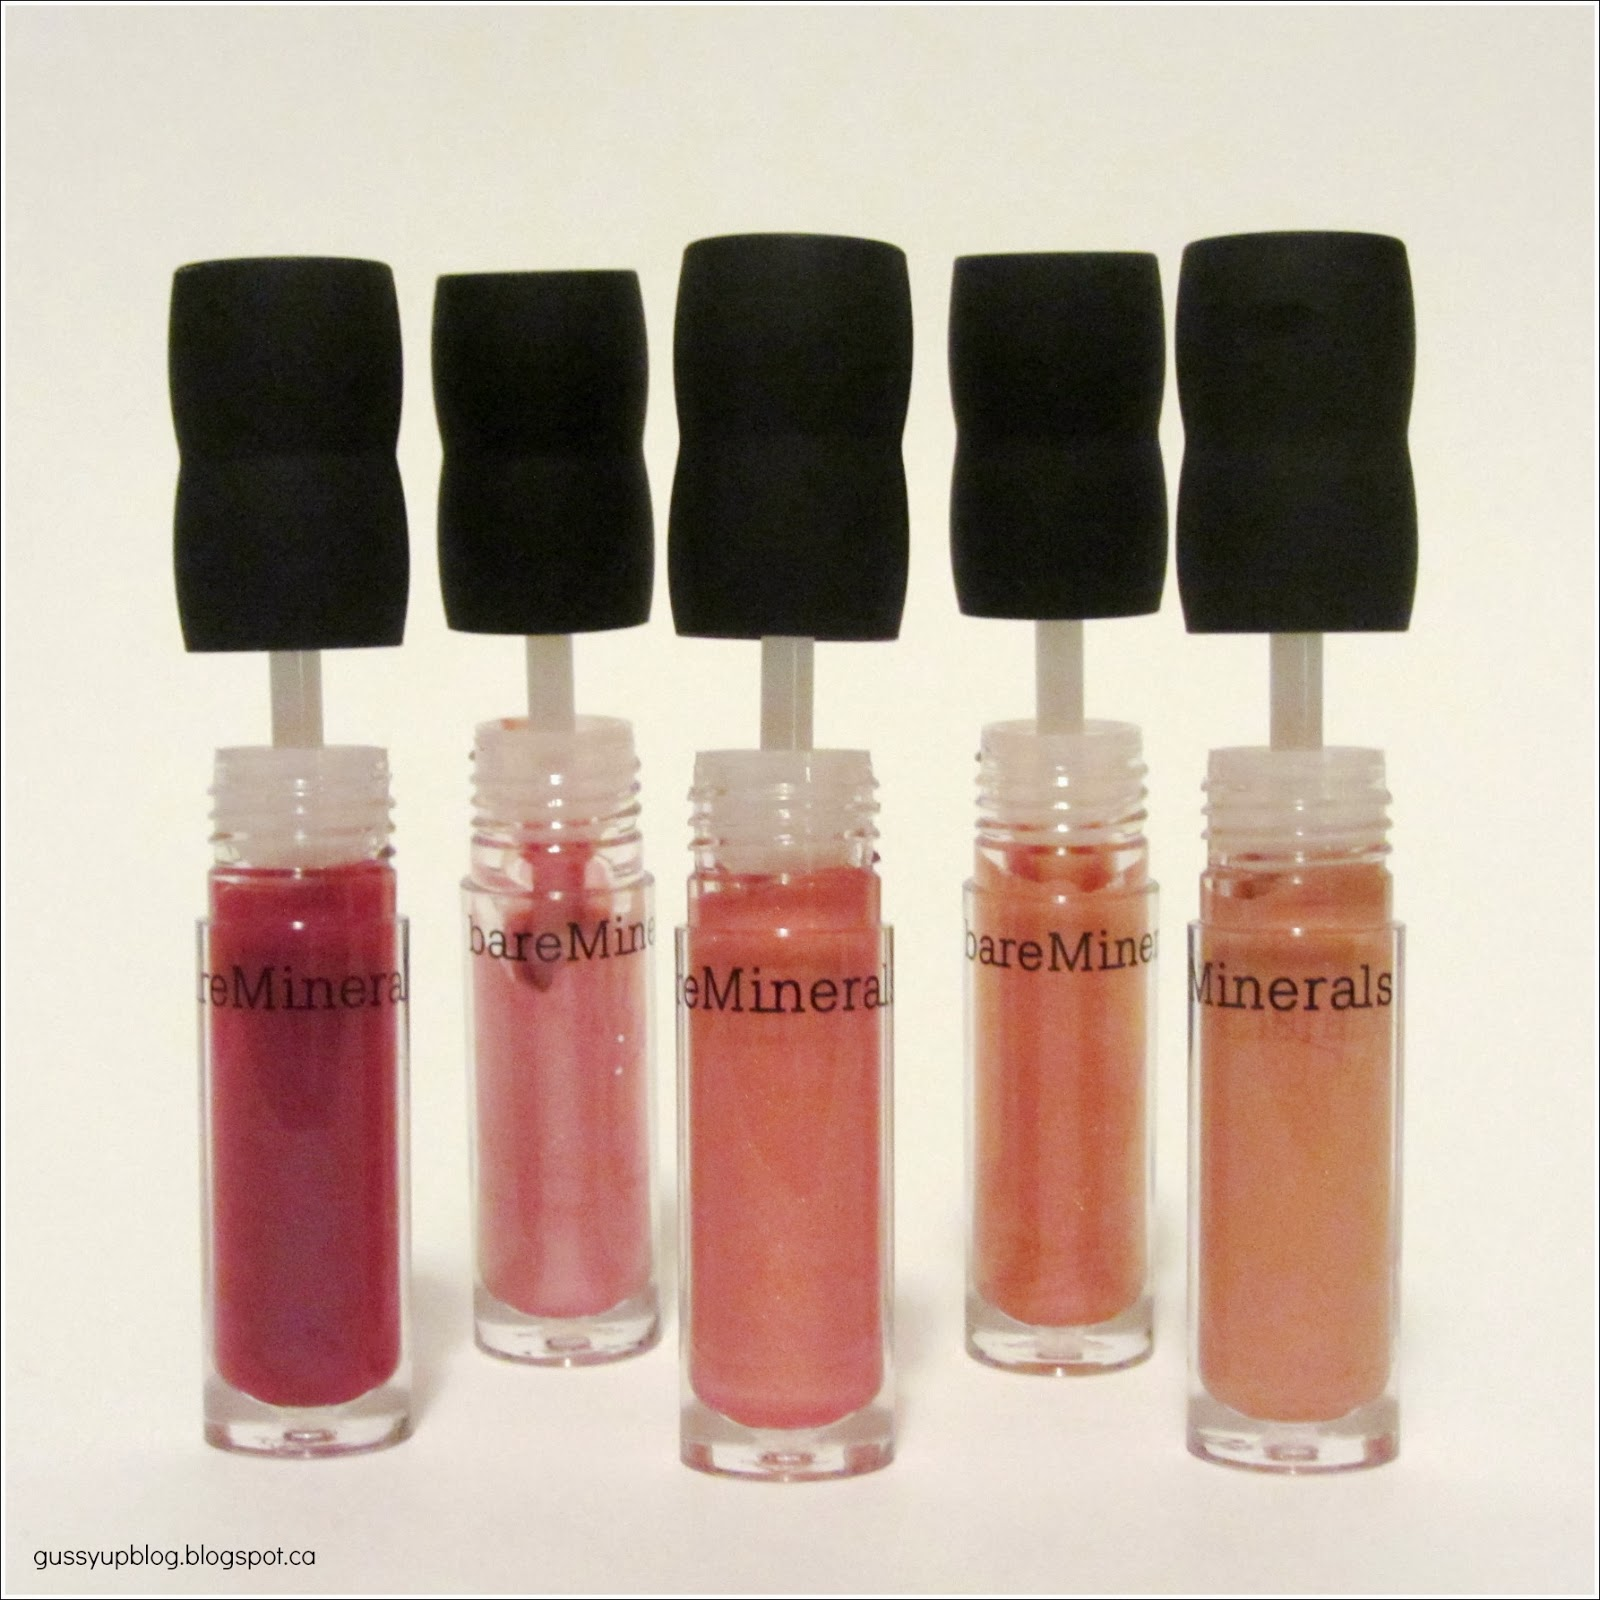 Review and Swatches: bareMinerals 100% Natural Mini Lip Gloss Set, Plumtini, Muffin Top, Pink Lemonade, Apricot Nectar and Sugar Cookie